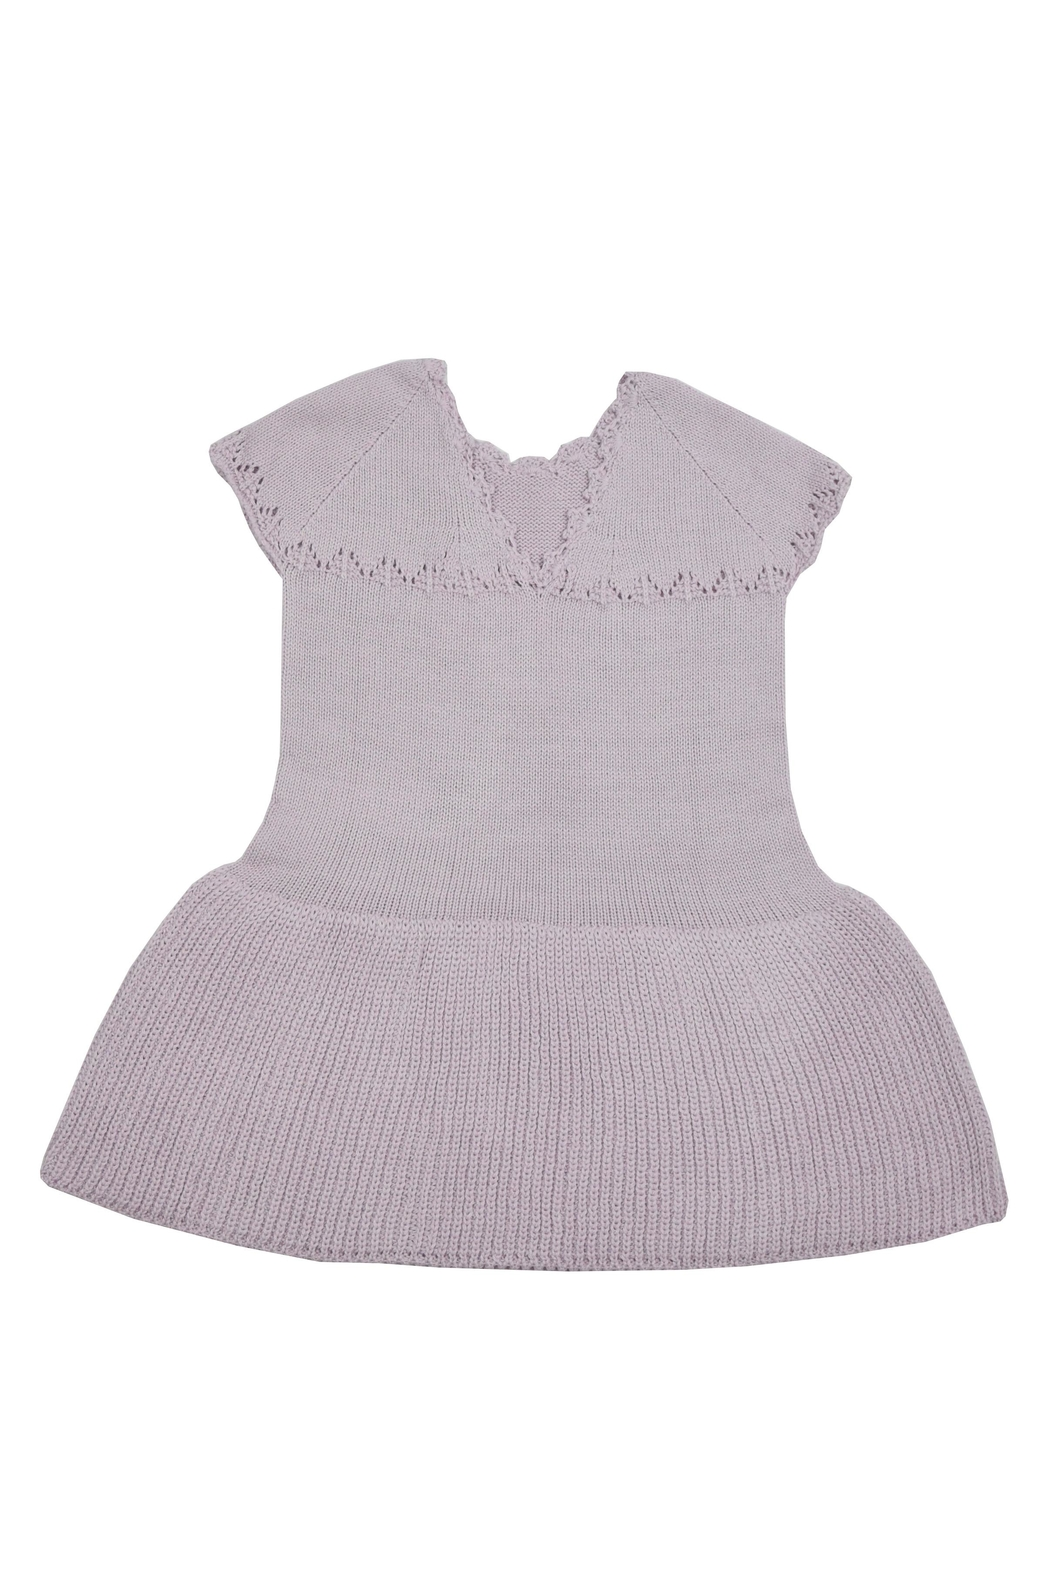 cesar blanco Lilac Knitted Dress - Front Full Image